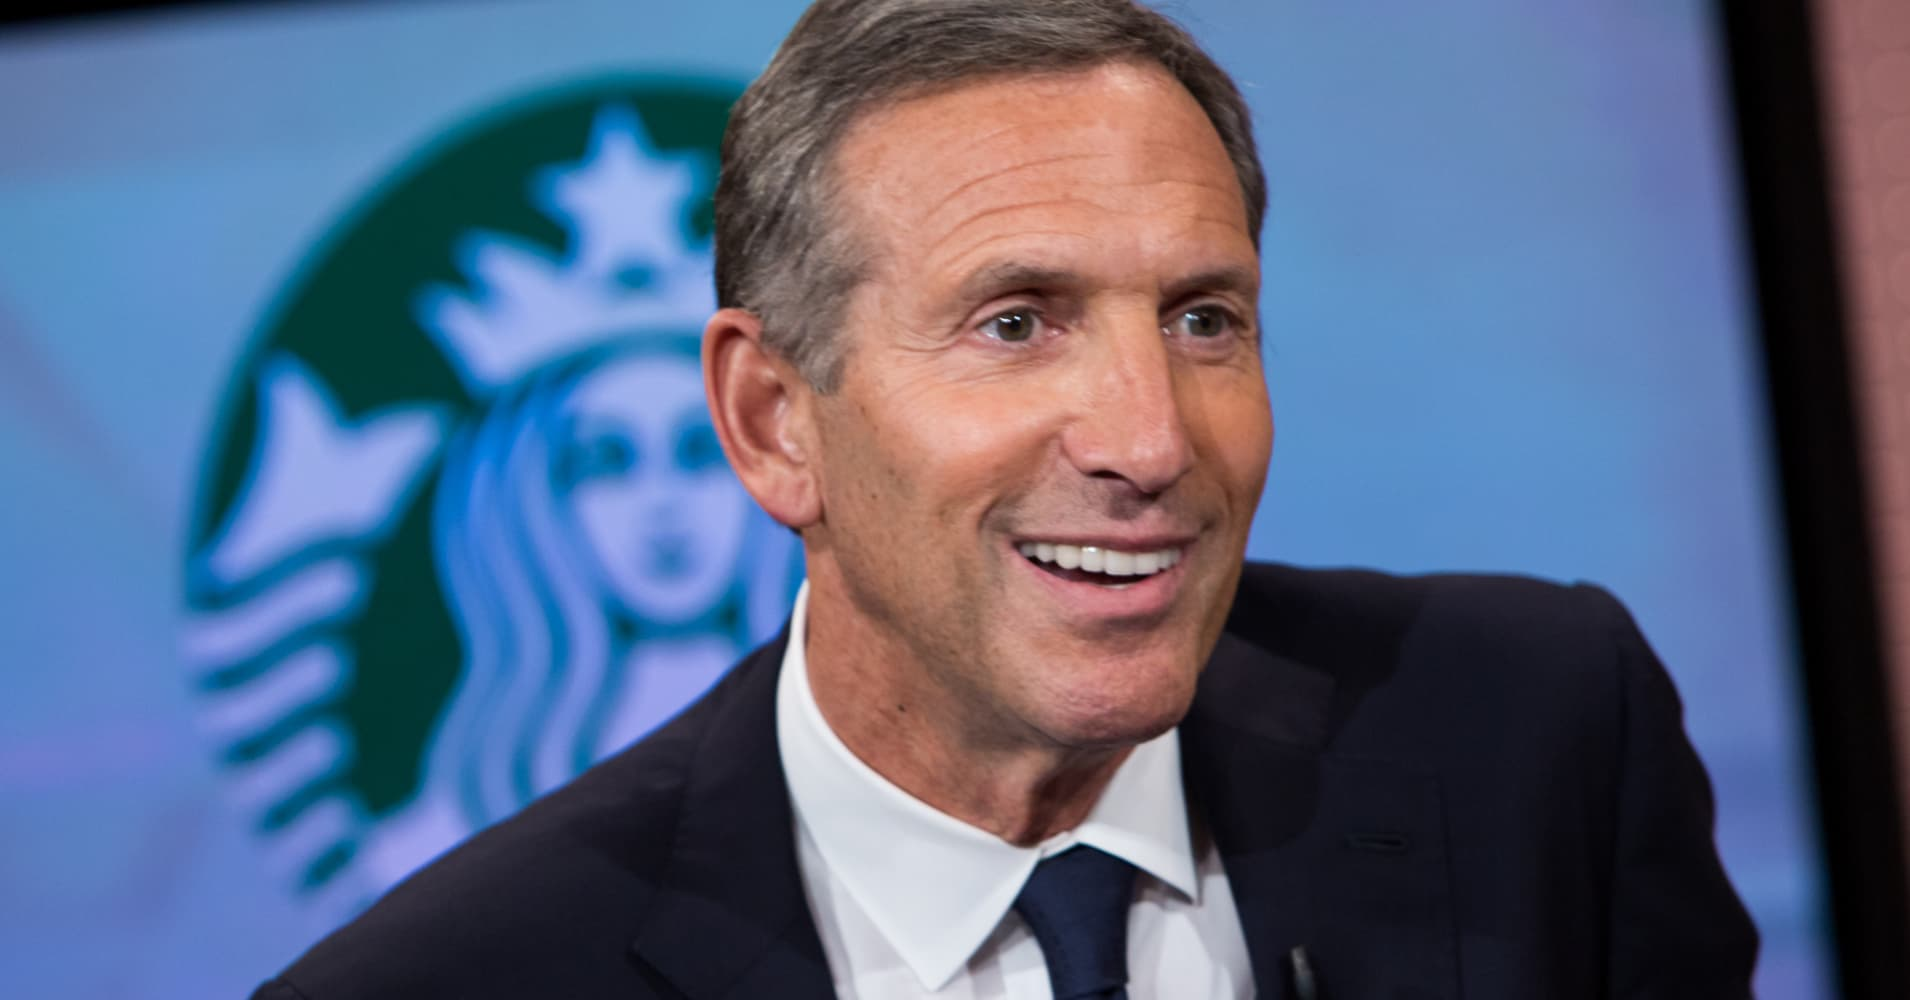 howard schlutz as a leader A year after handing over the reins to new ceo kevin johnson, long-time  starbucks leader howard schultz is stepping down from his role of.